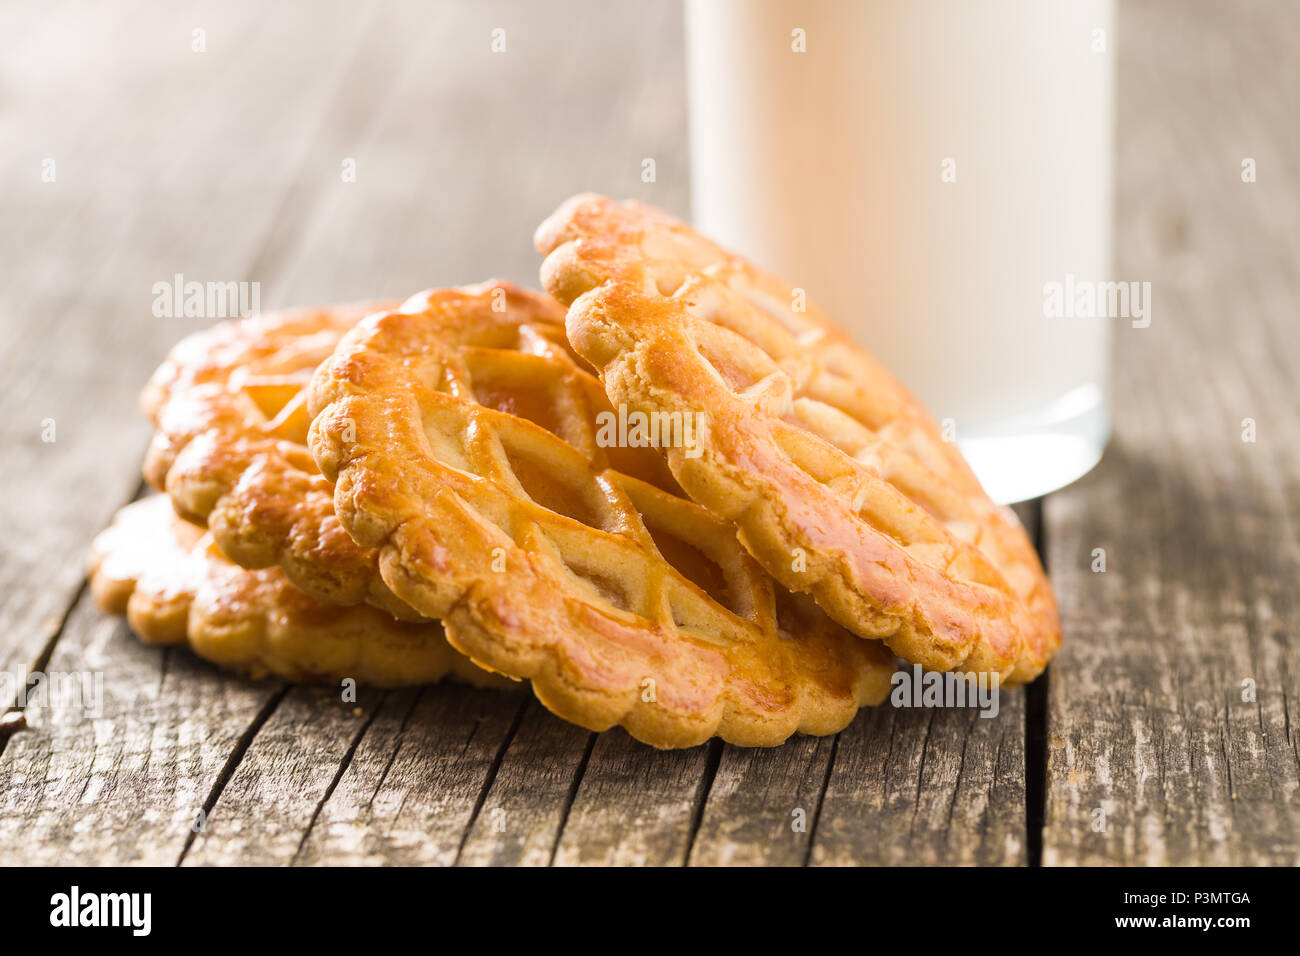 The apple pie cookies on old wooden table. - Stock Image